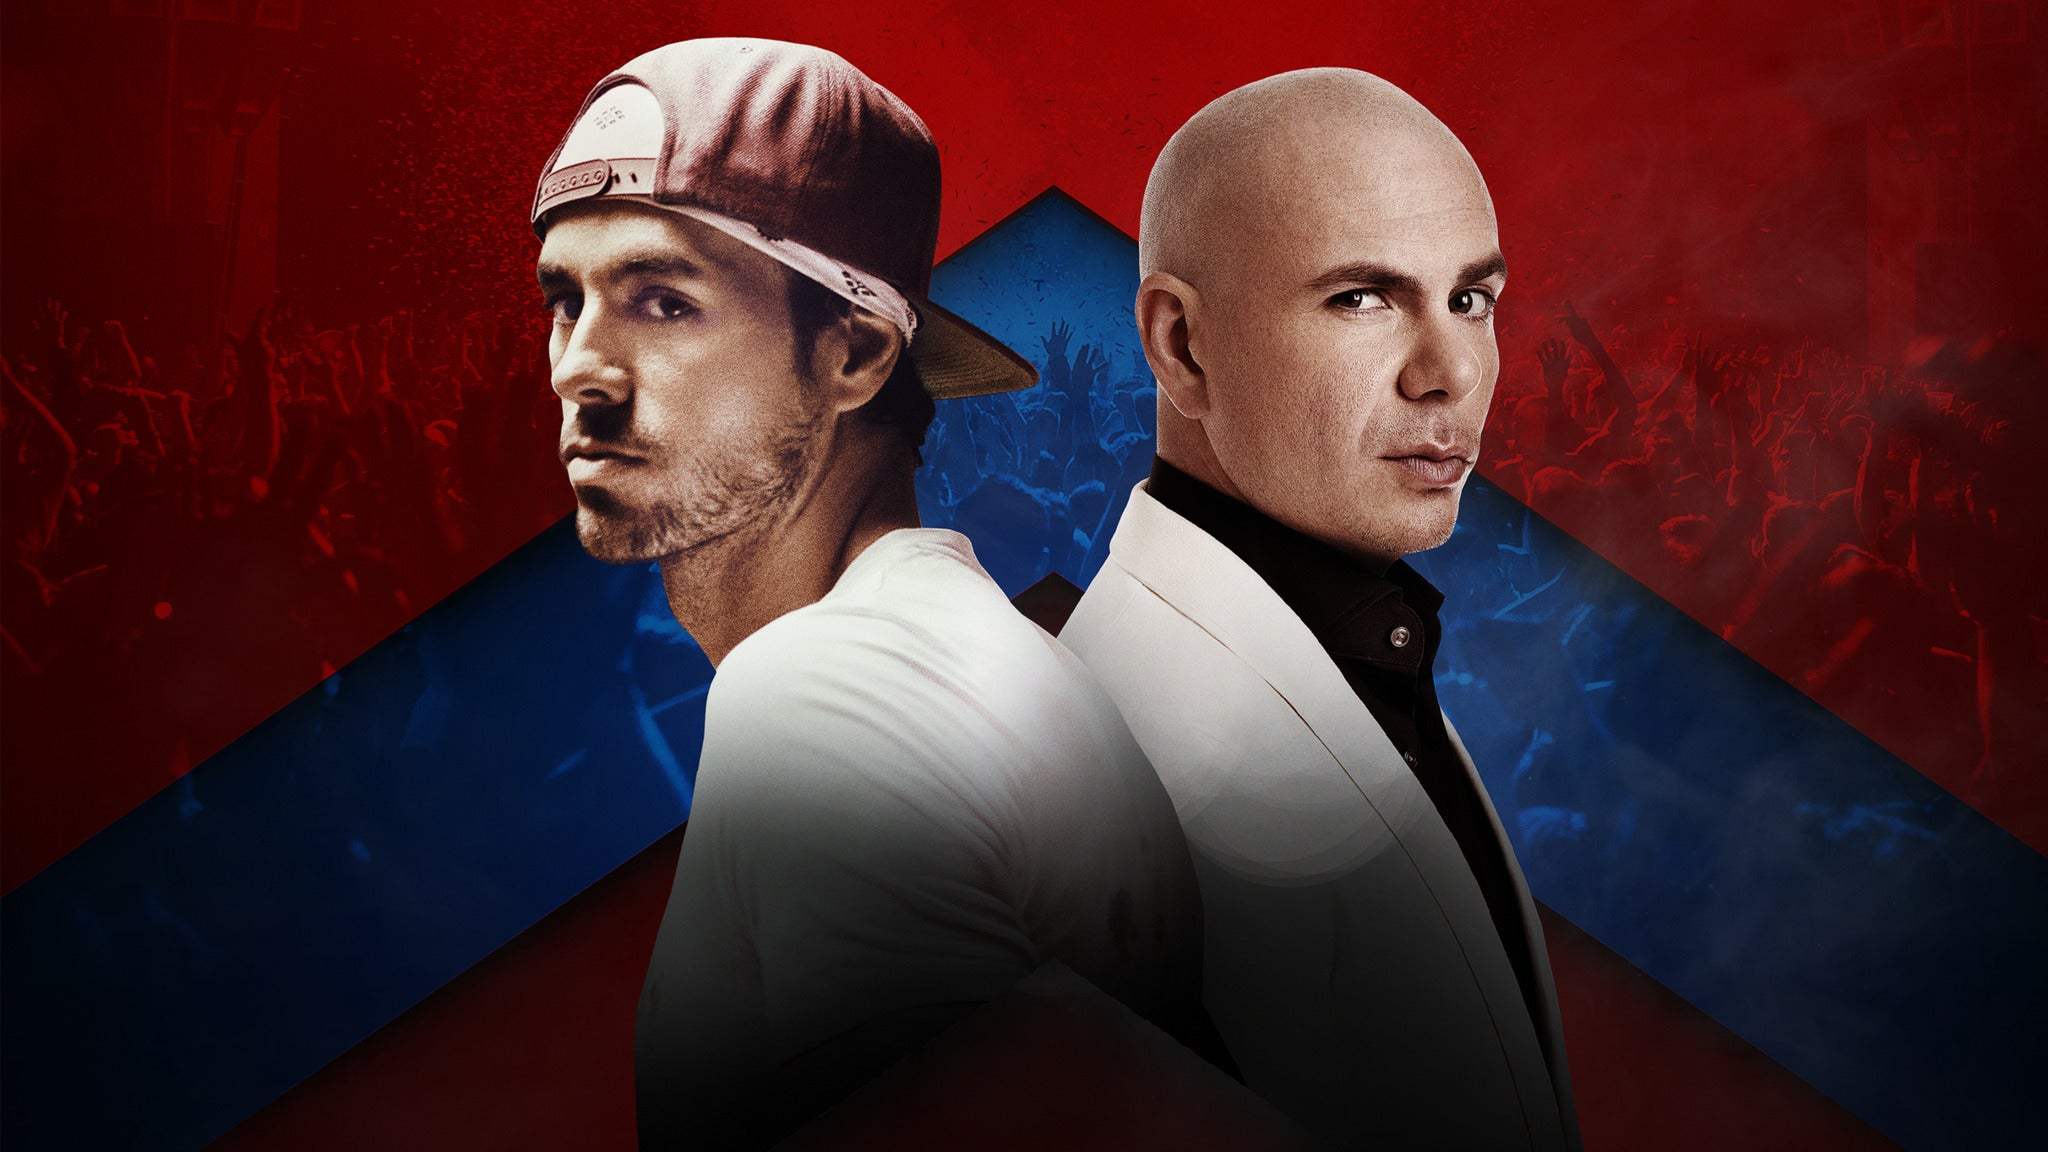 Enrique Iglesias & Pitbull at The Forum - Inglewood, CA 90305